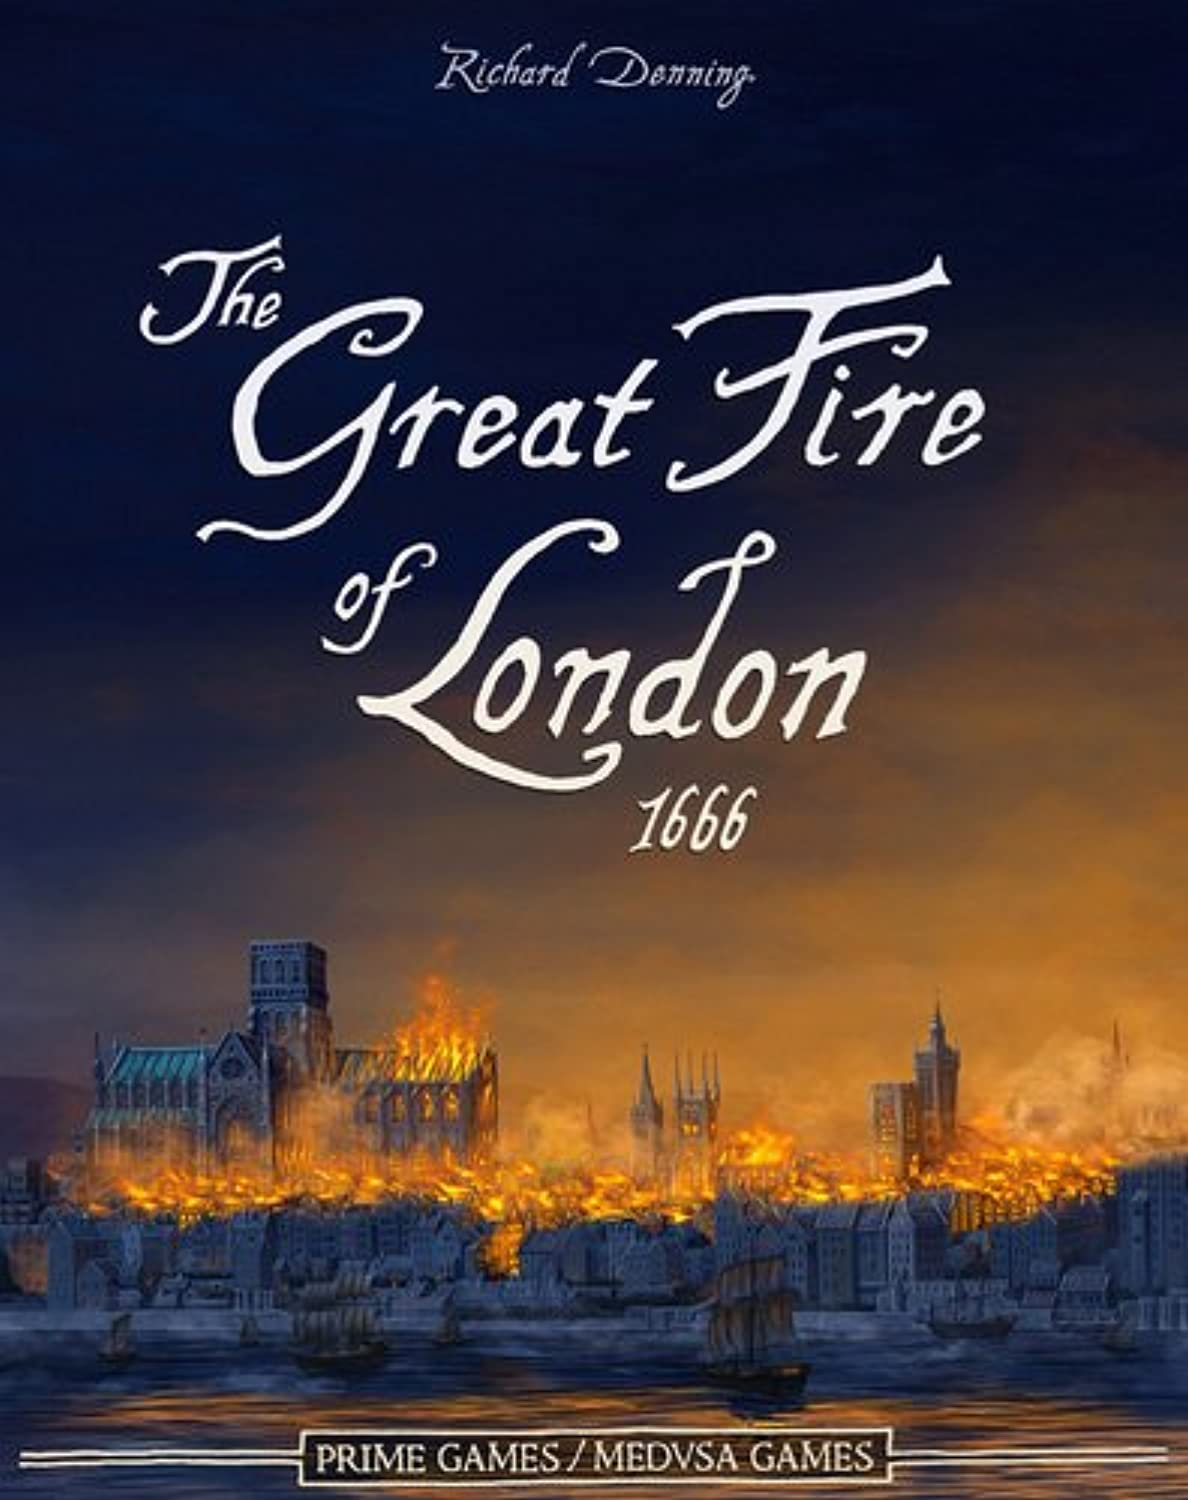 JKLM Games - The Great Fire of London 1666